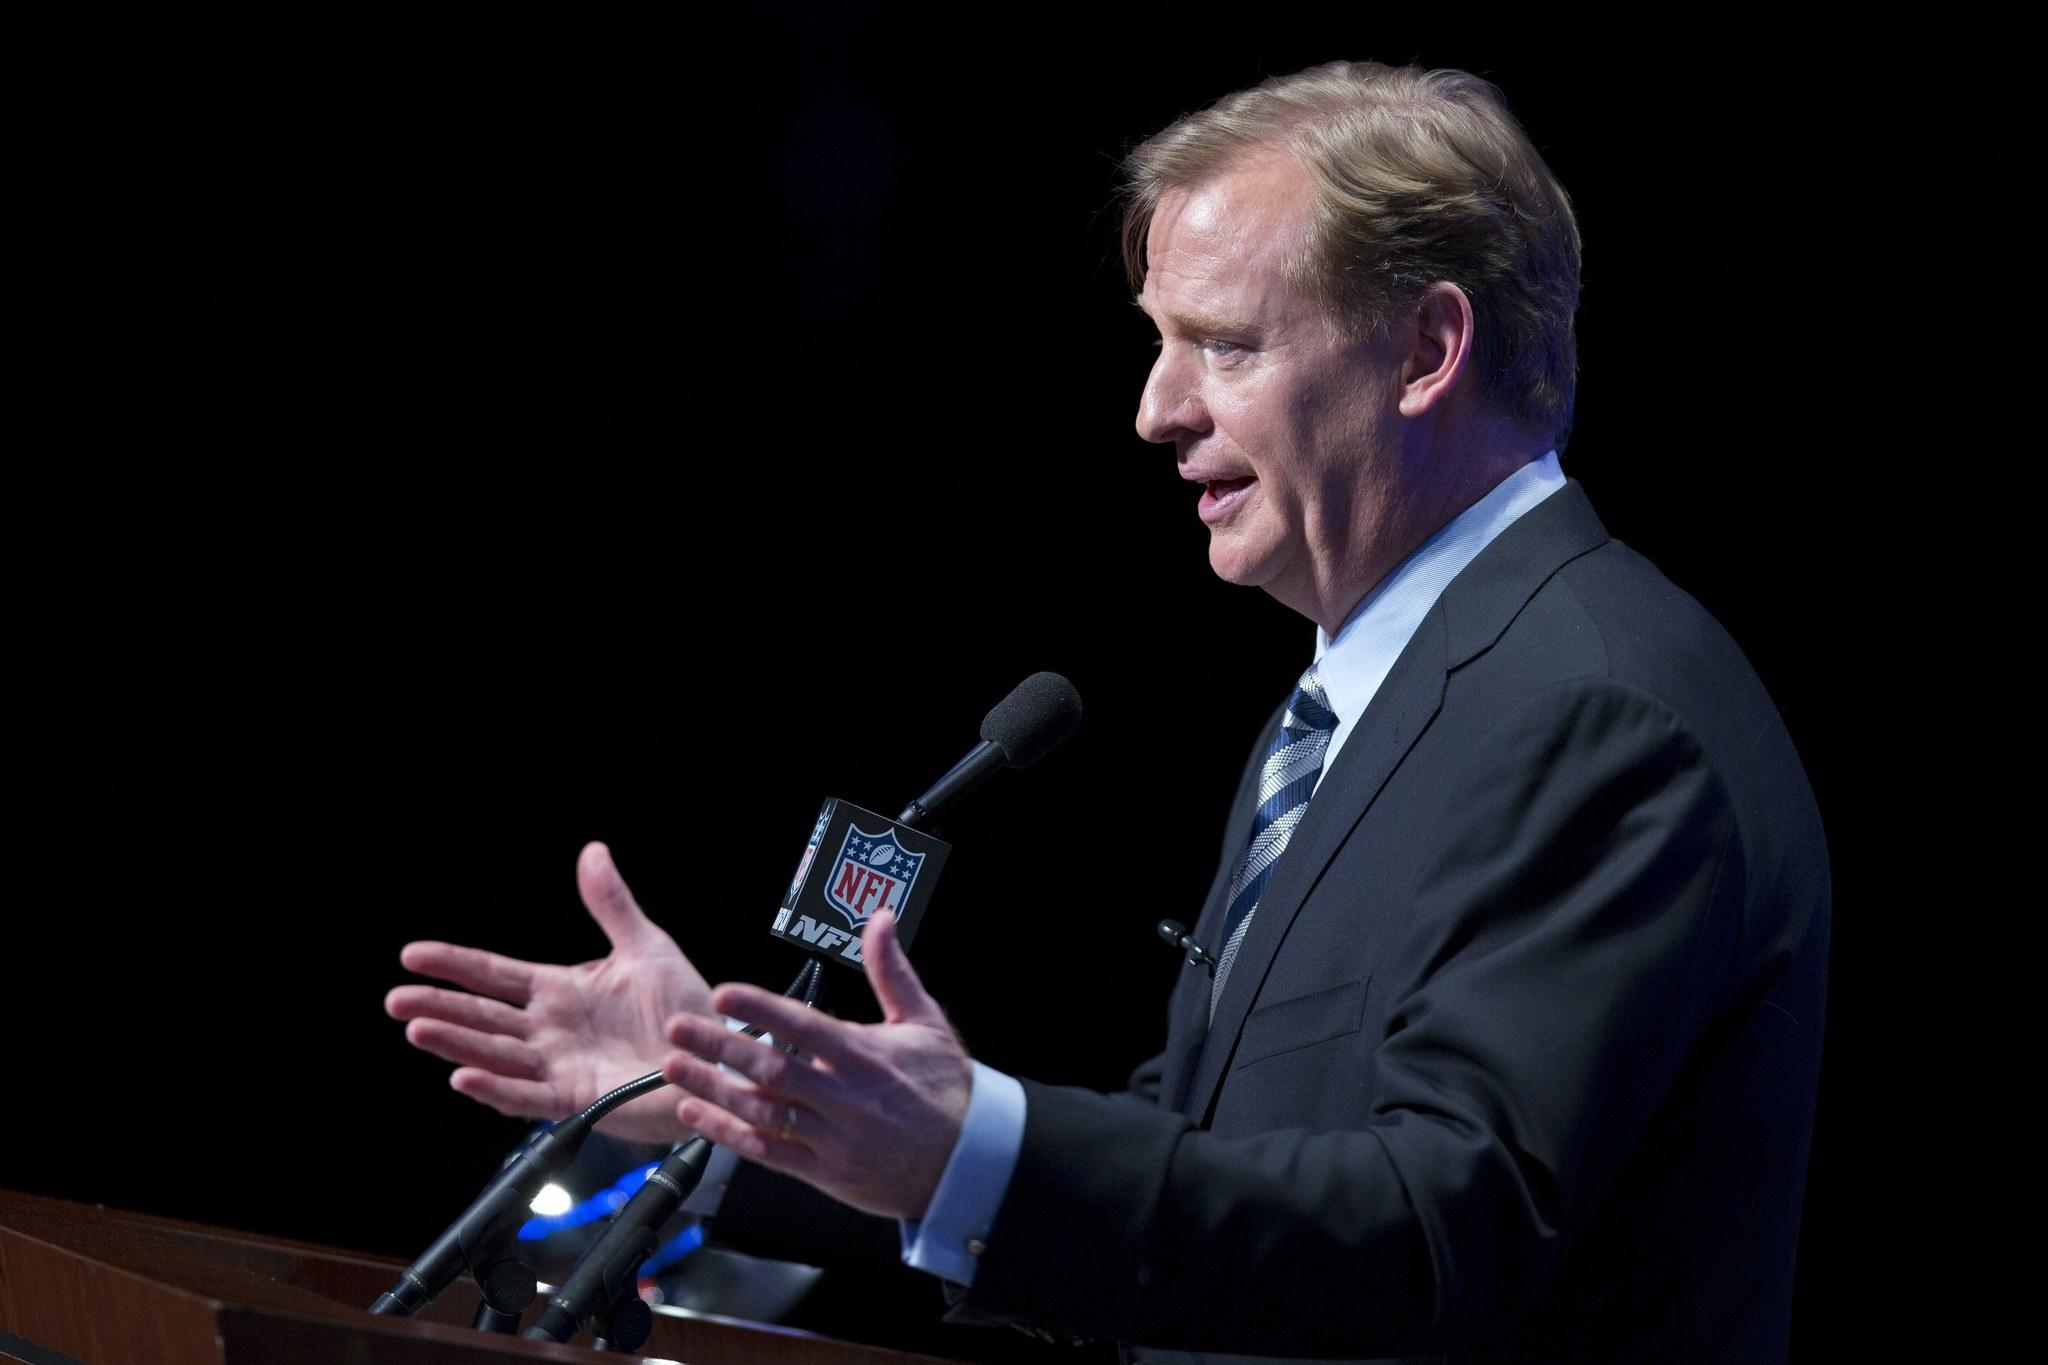 NFL Commissioner Roger Goodell speaks during a news conference ahead of the Super Bowl in New York on Friday.